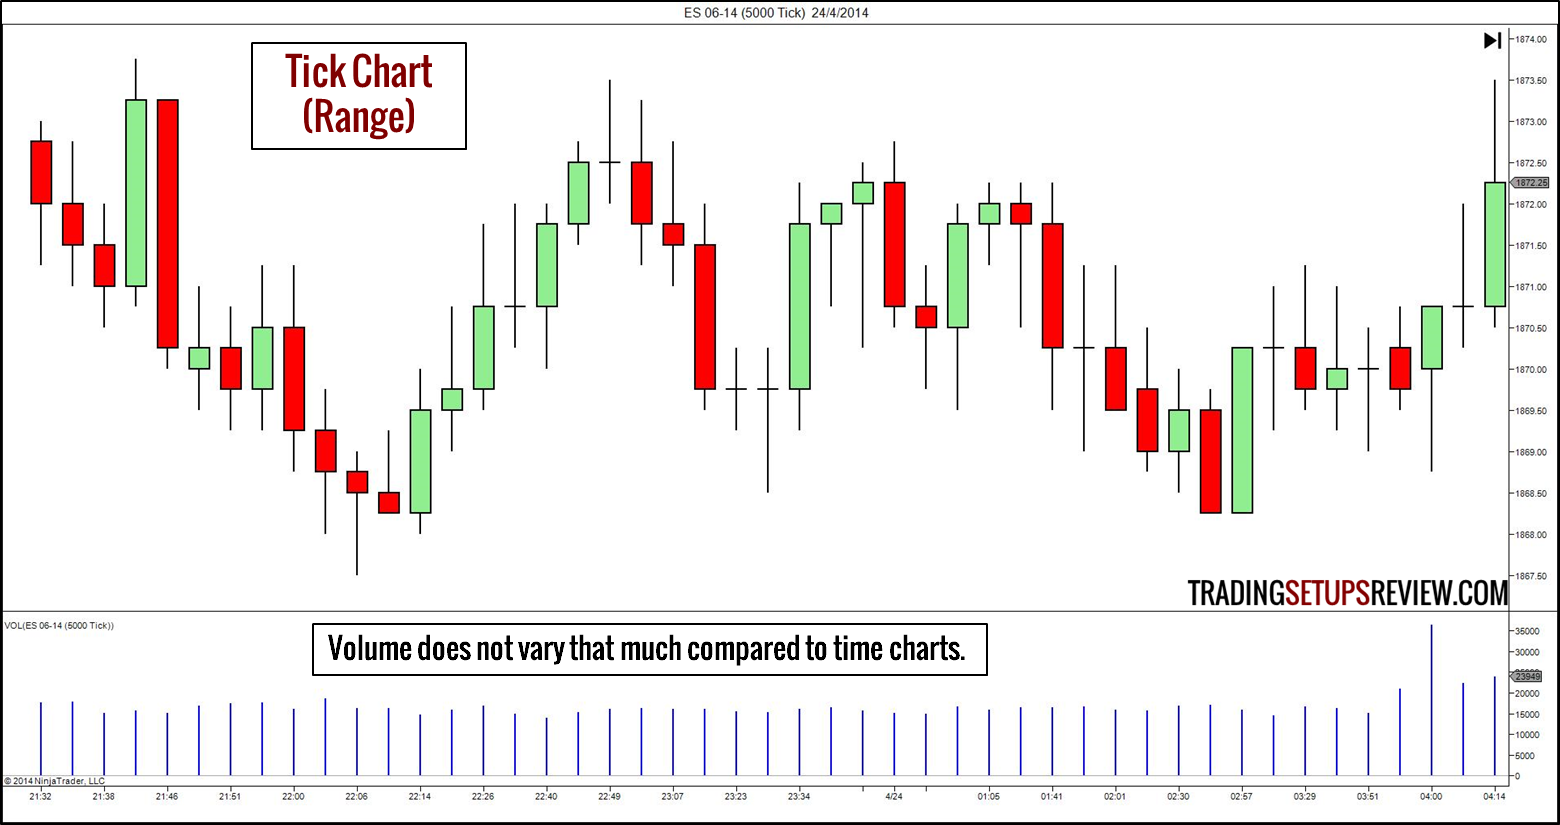 10 Types of Price Charts for Trading - Trading Setups Review